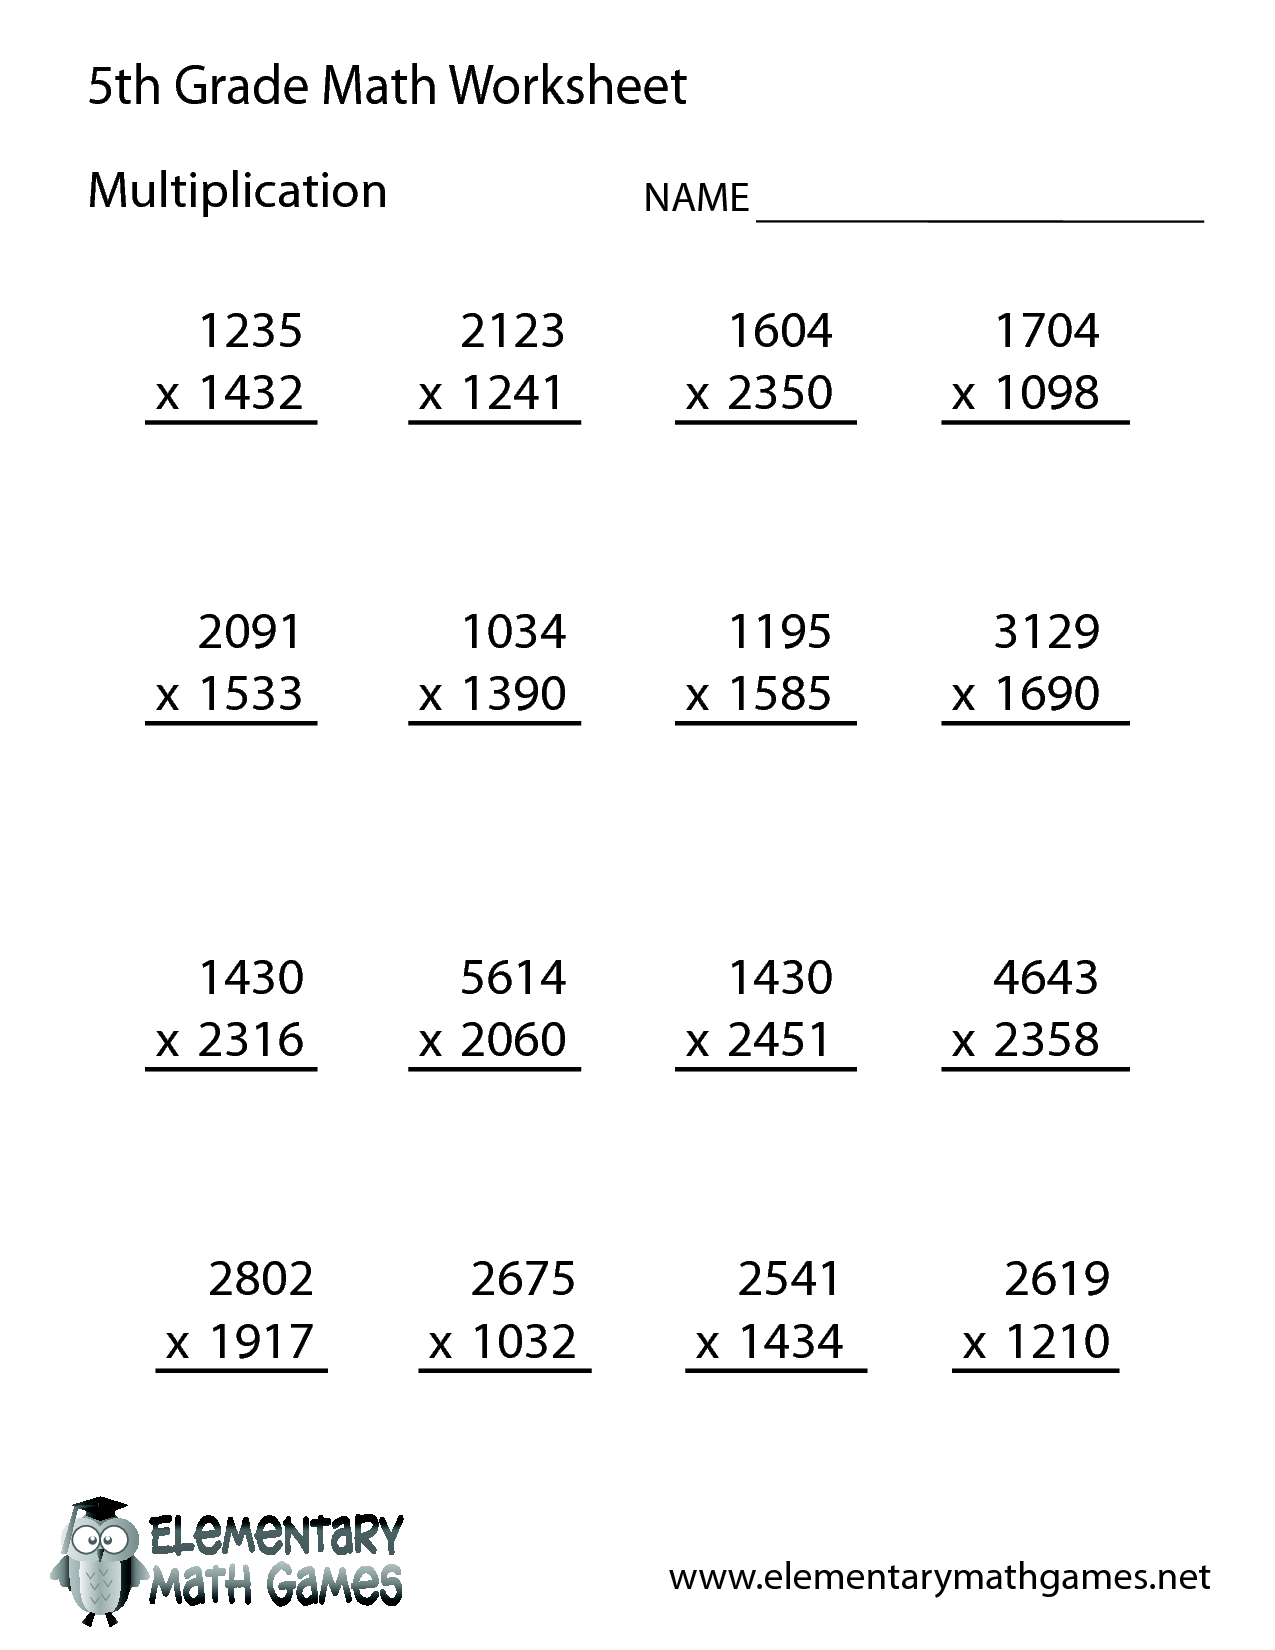 worksheet Math Worksheets For Grade 6 6 7 8 and 9 times tables multiplication math worksheets third free for 5th grade worksheet